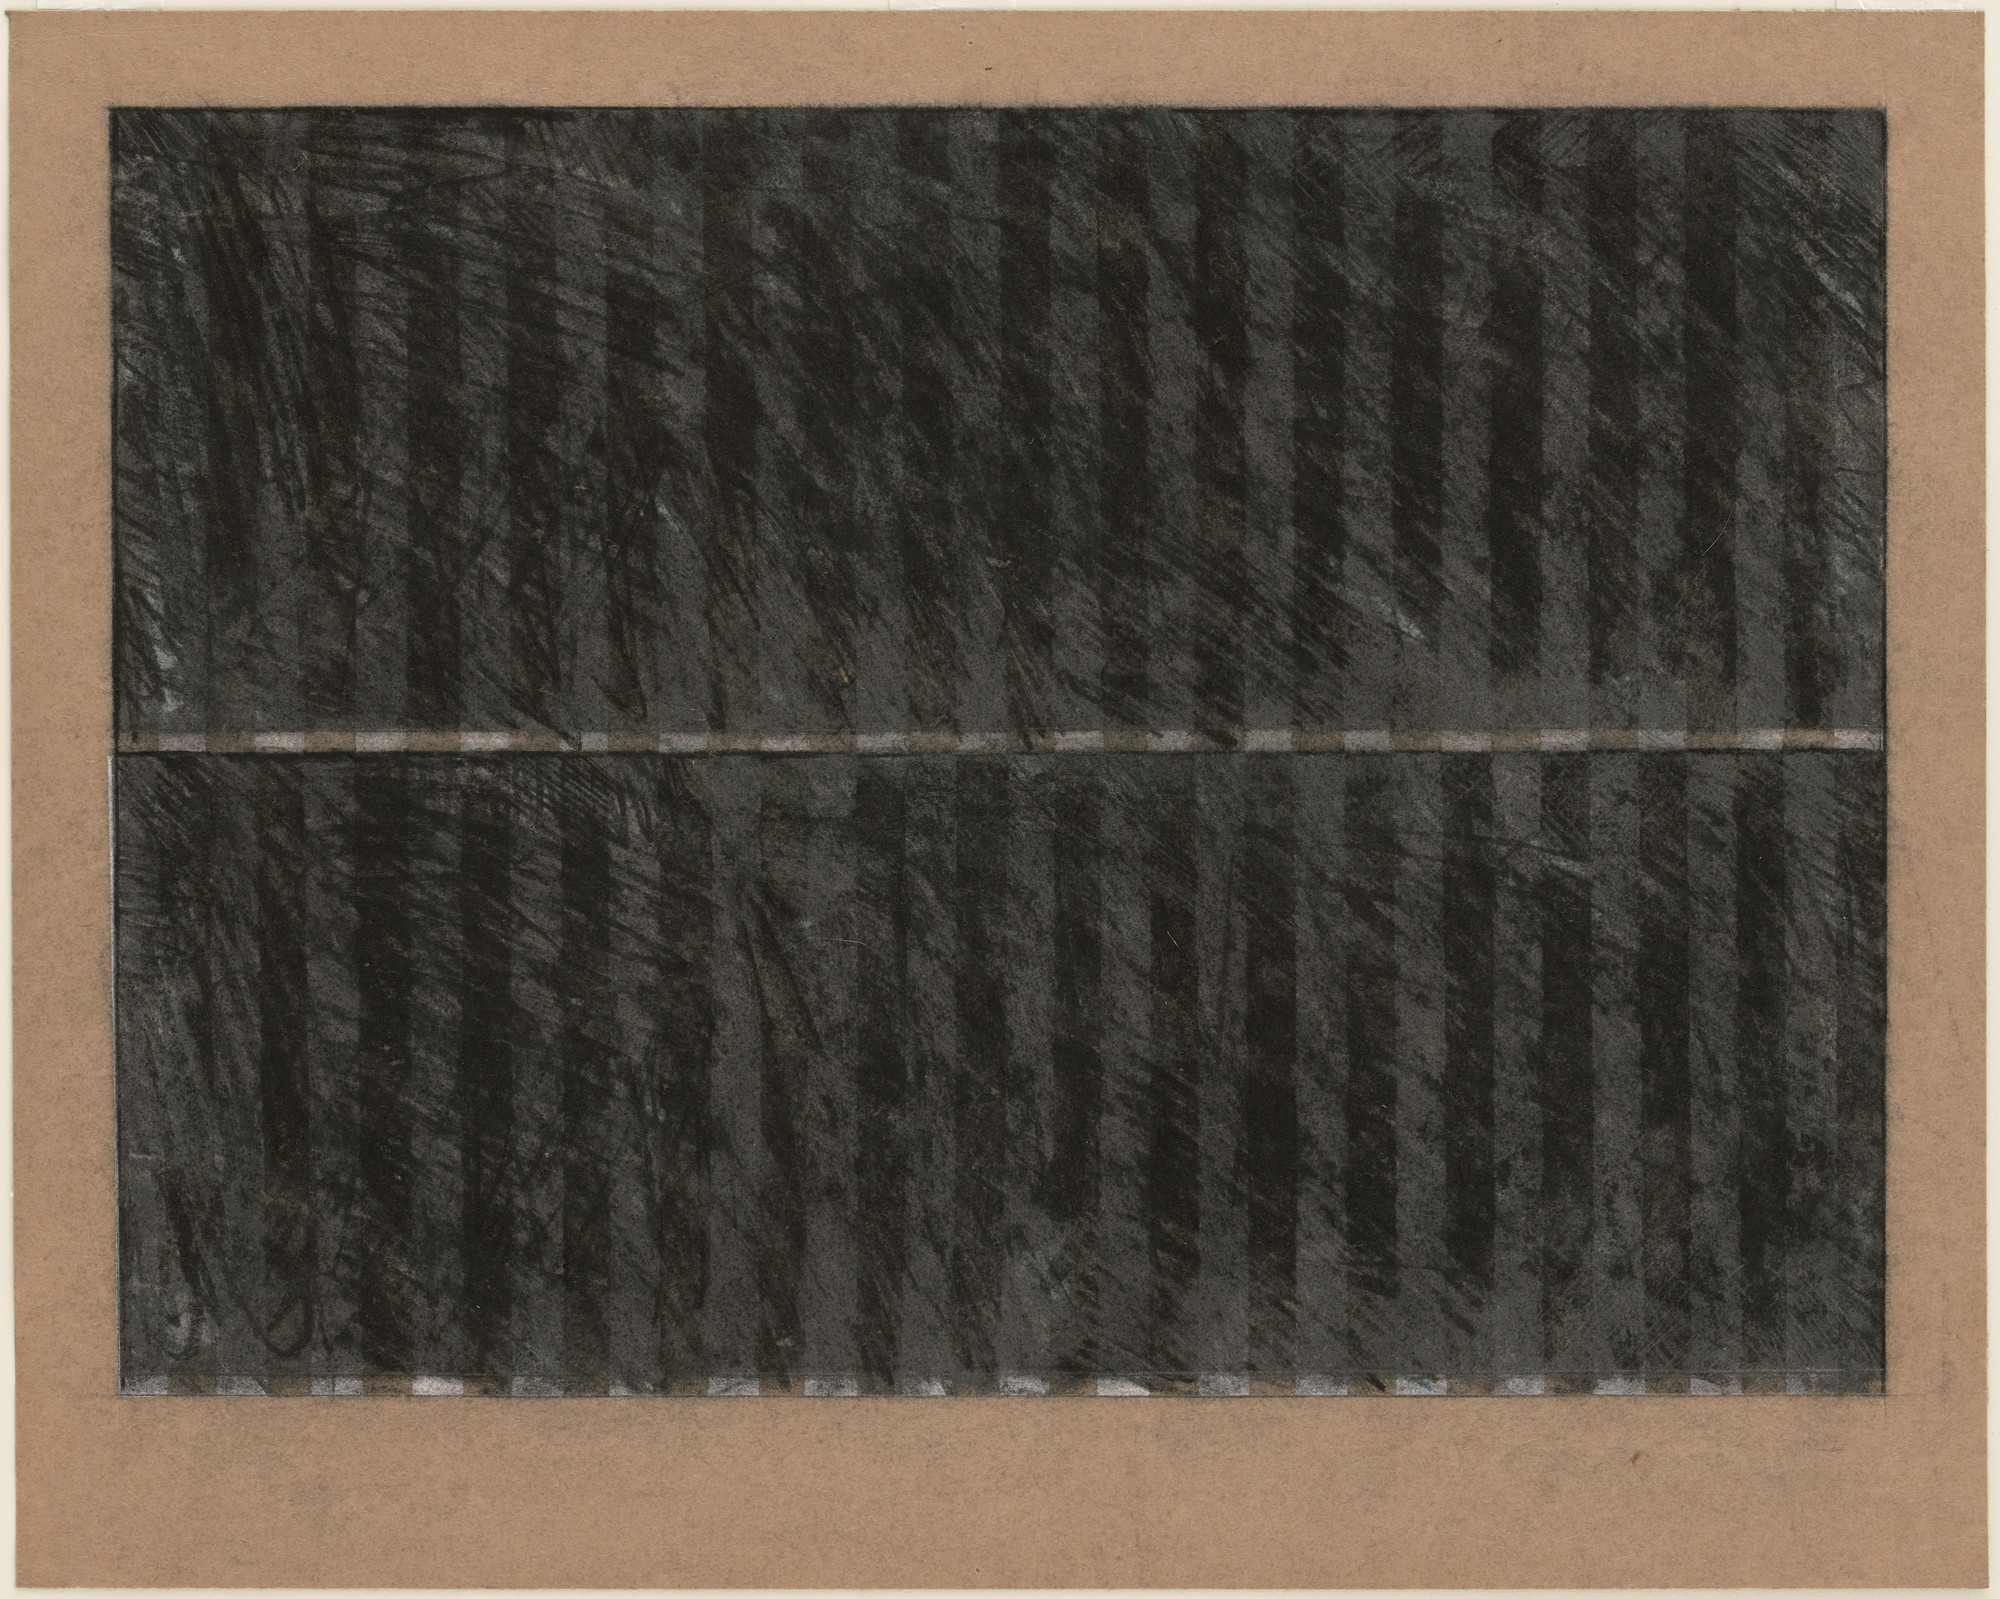 Brice Marden. Untitled. (1965)